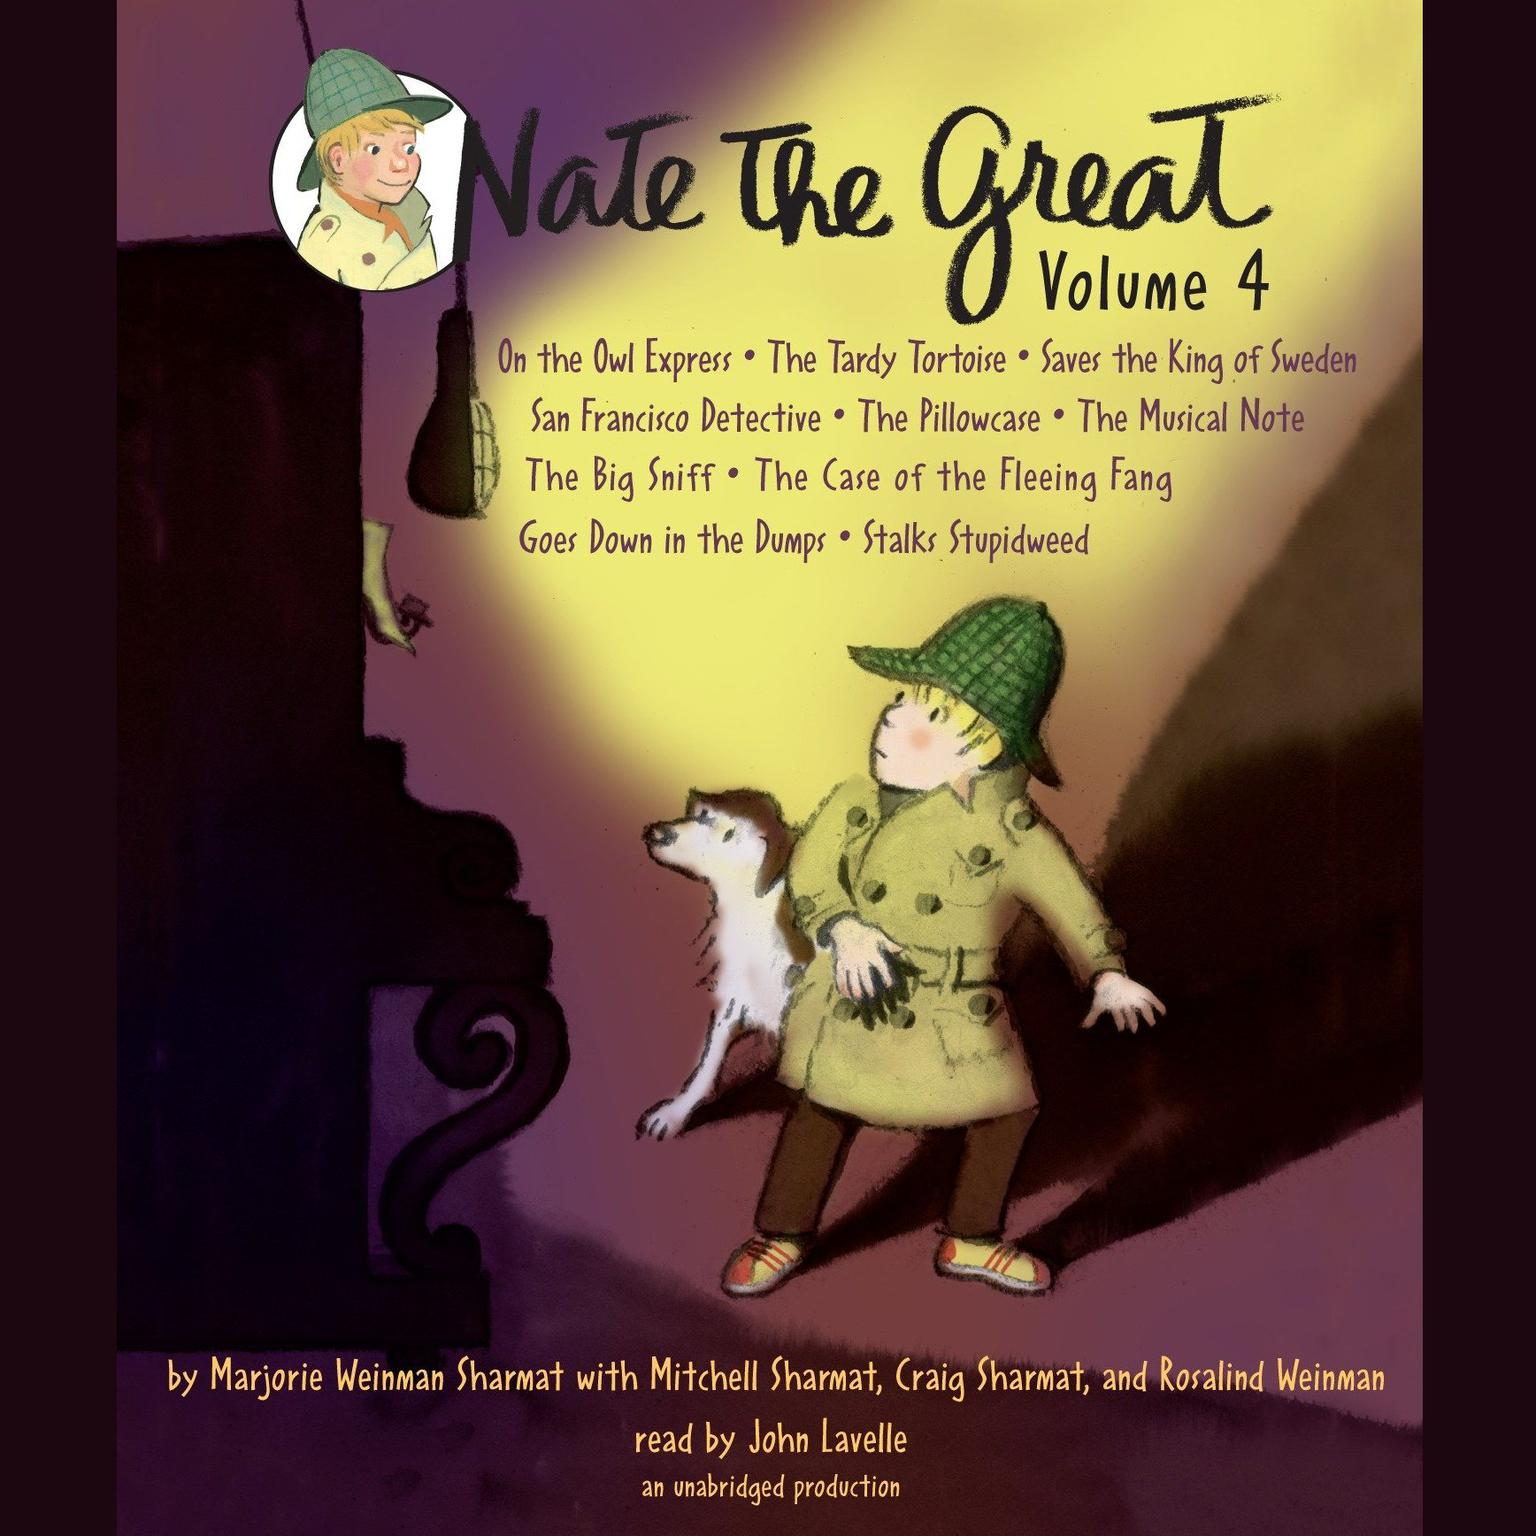 Printable Nate the Great Collected Stories: Volume 4: Owl Express; Tardy Tortoise; King of Sweden; San Francisco Detective; Pillowcase ; Musical Note; Big Sniff; and Me; Goes Down in the Dumps; Stalks Stupidweed Audiobook Cover Art